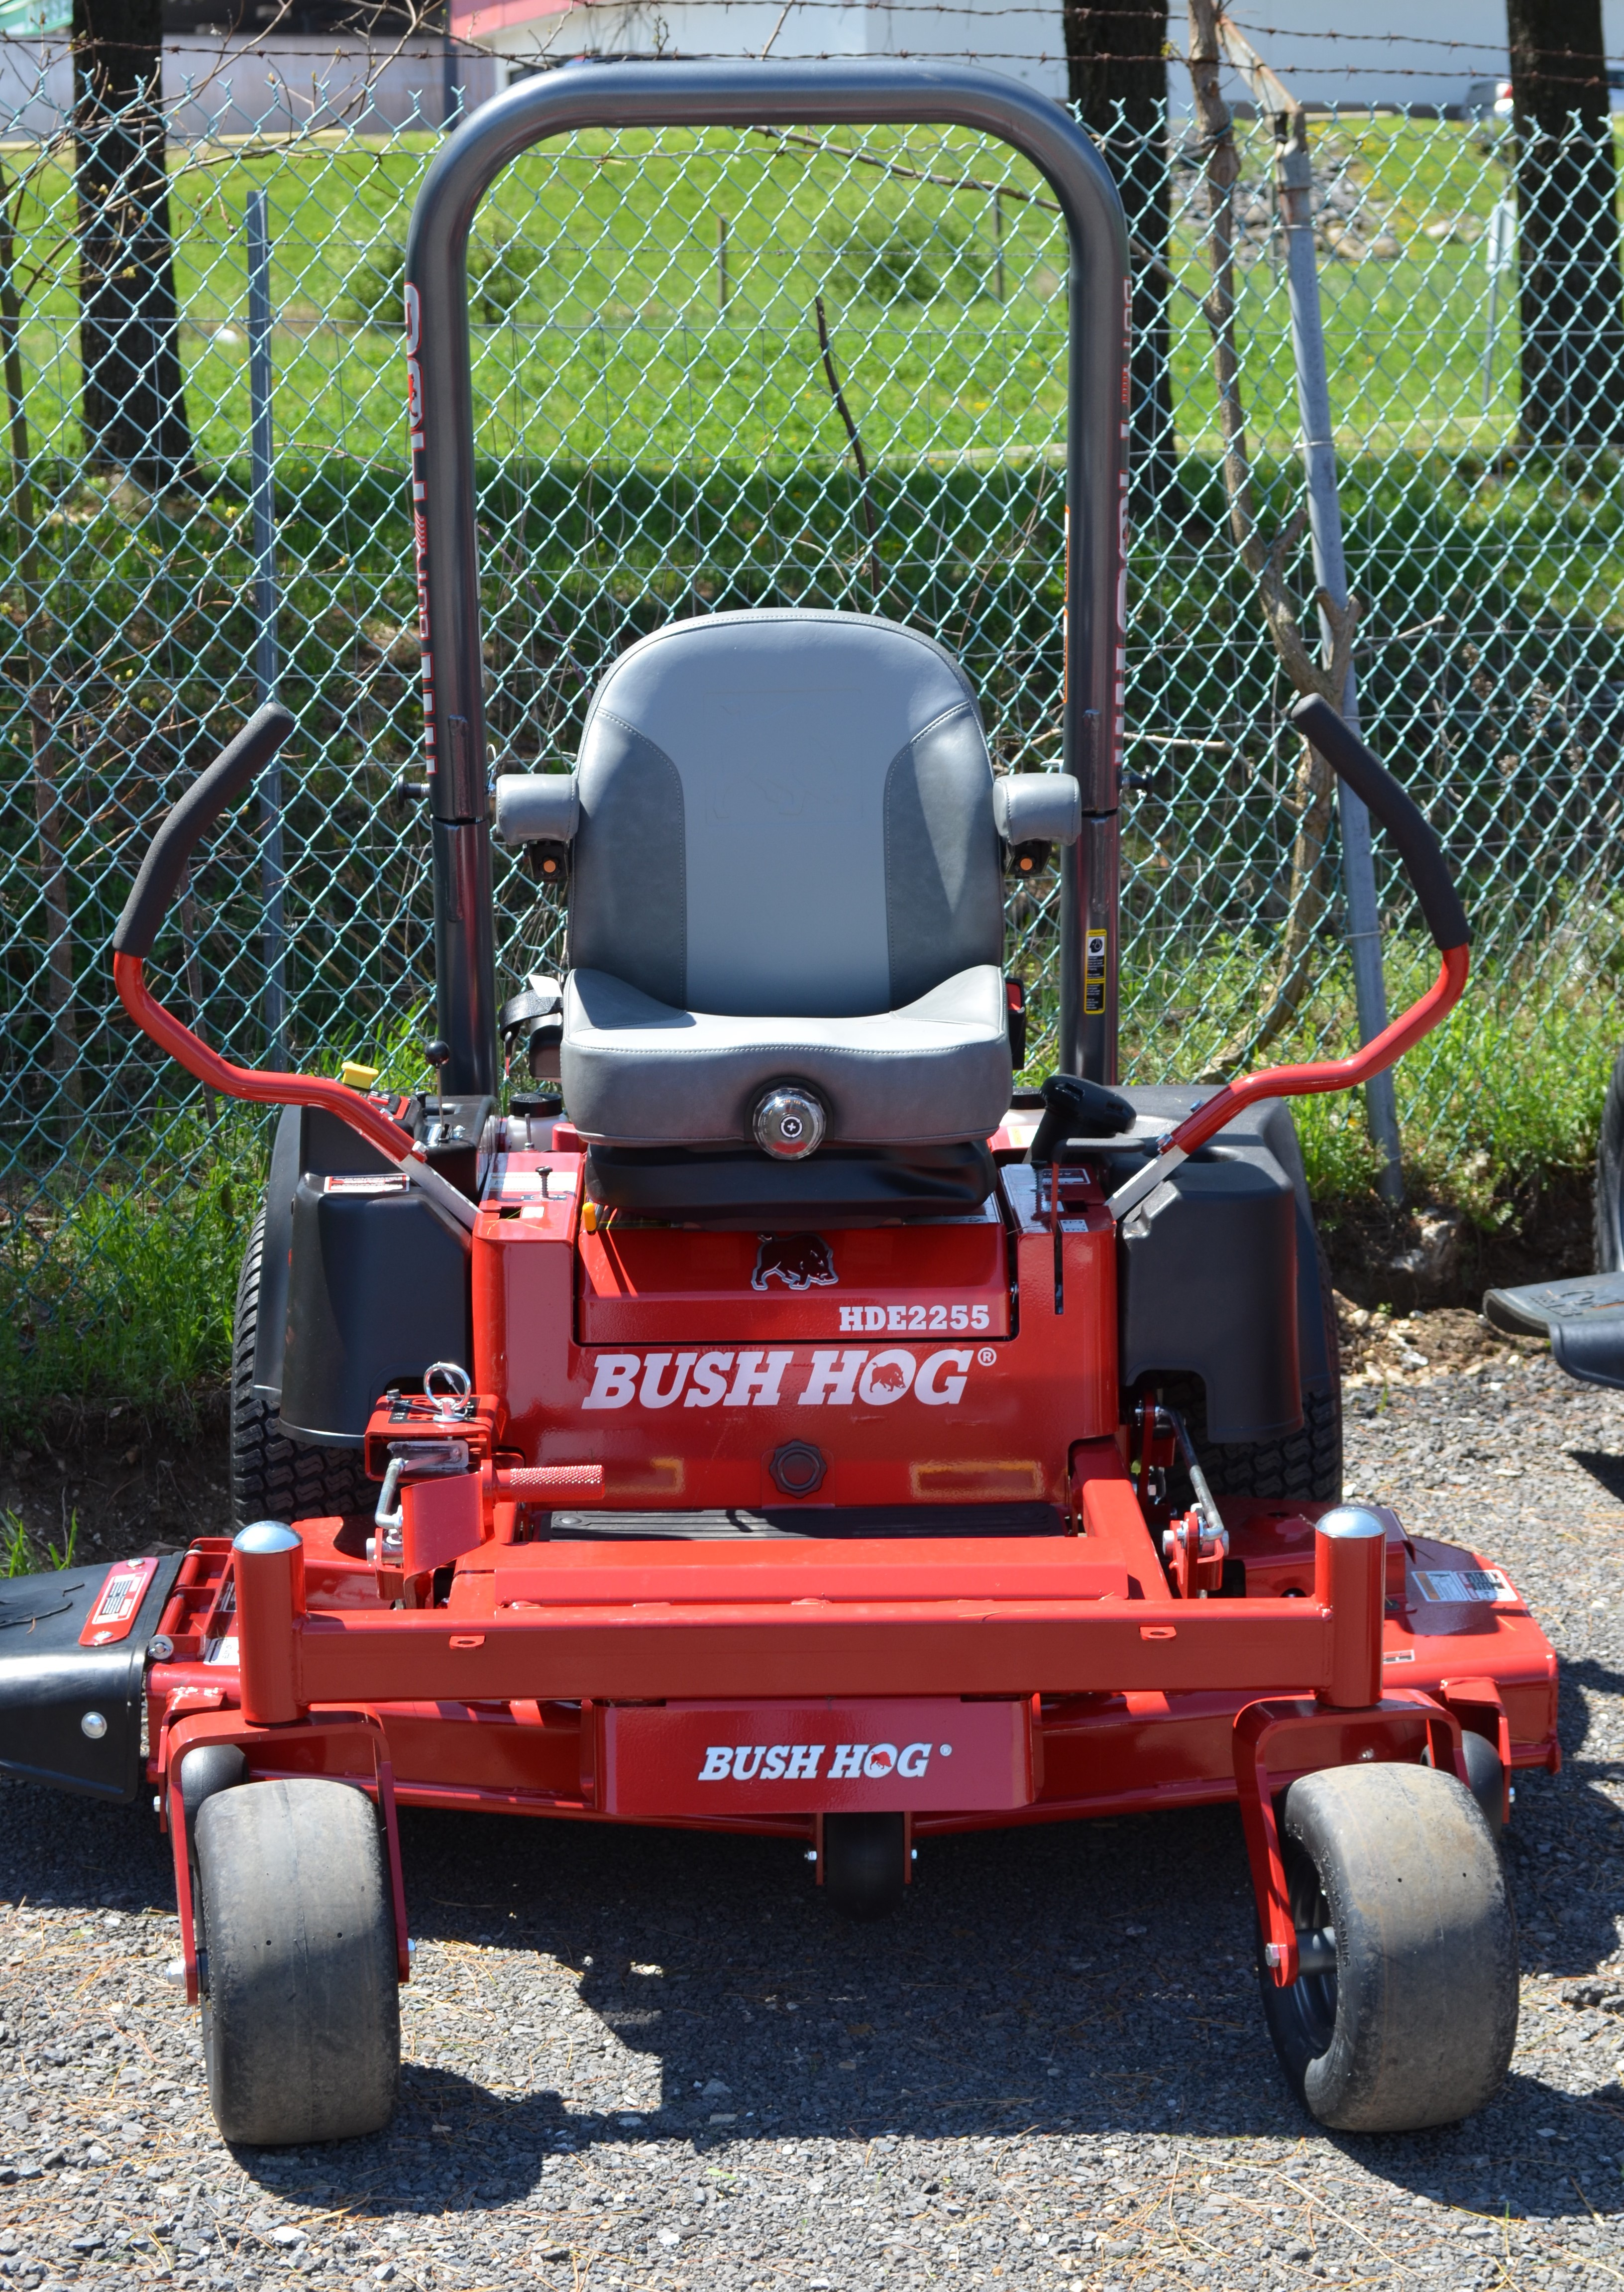 Bush Hog HDE-2255 Zero Turn Mower Image